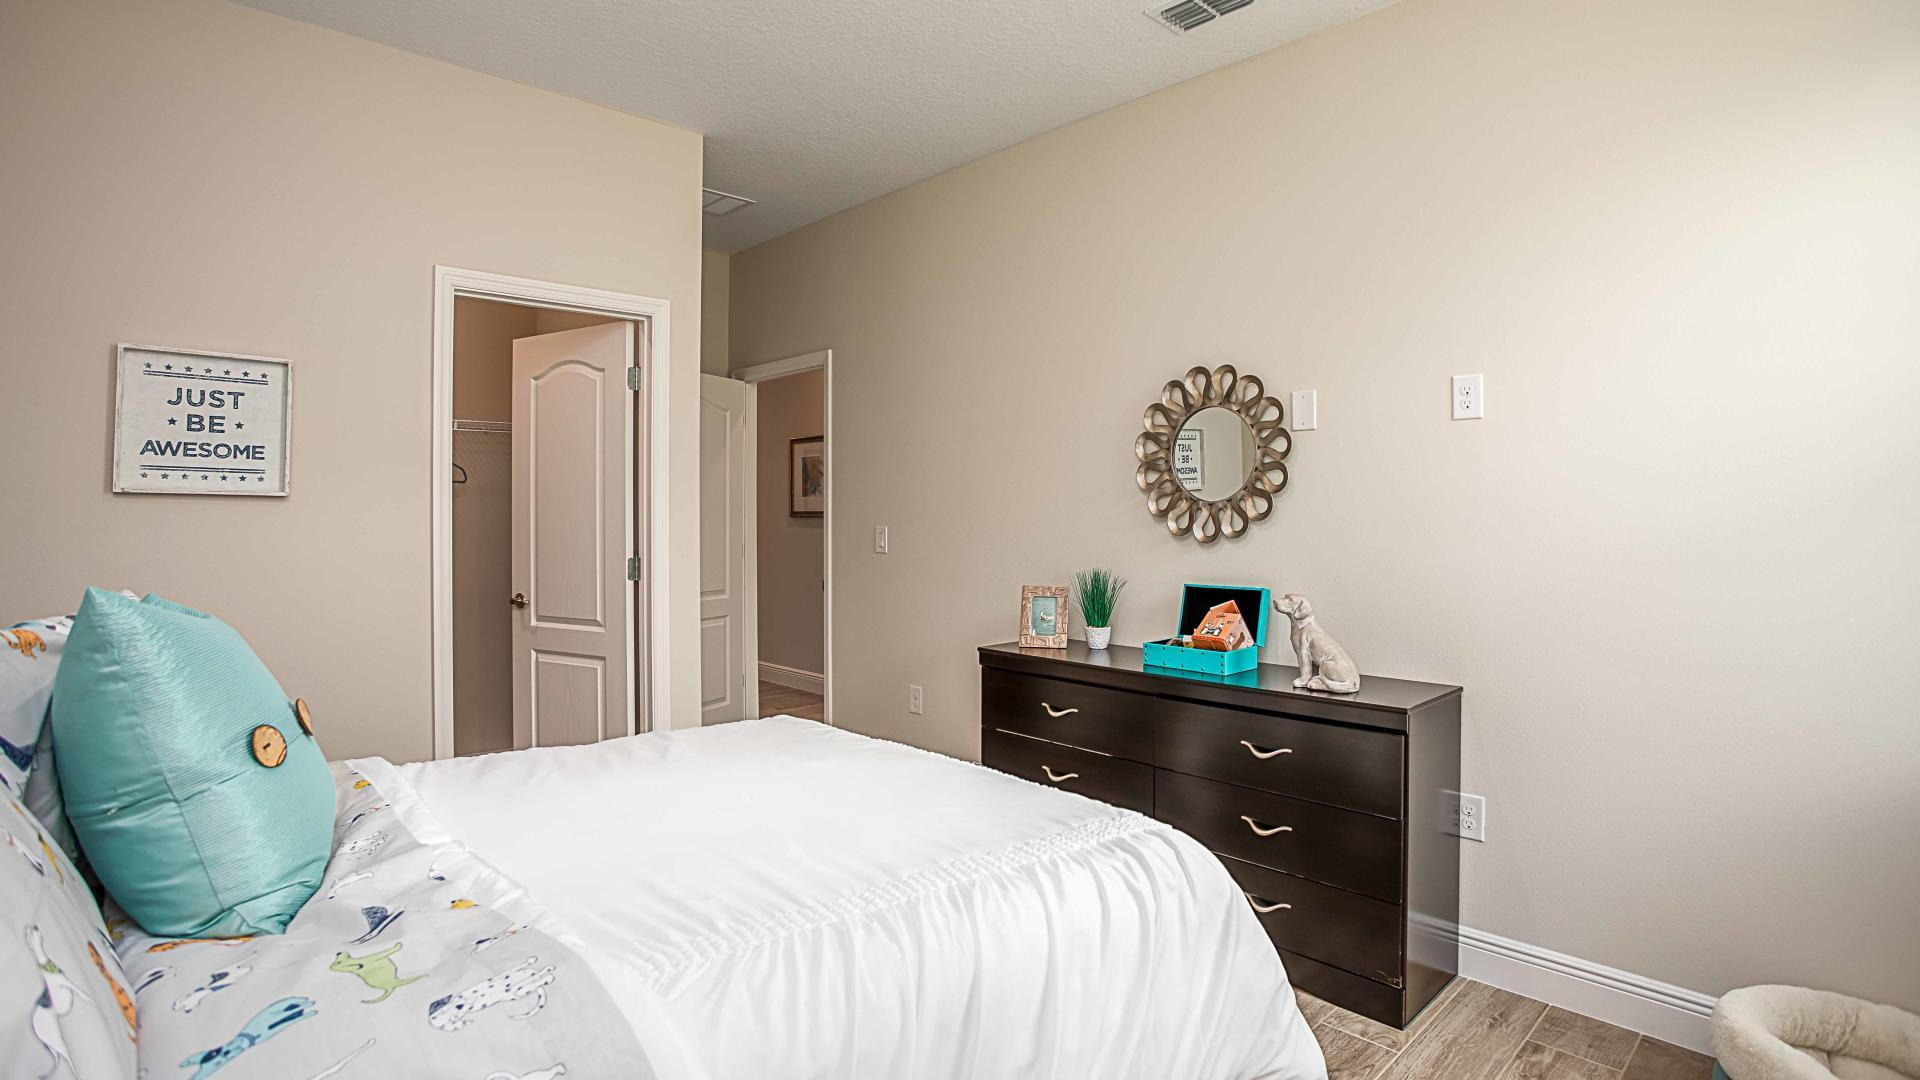 Bedroom featured in the Sienna By Maronda Homes in Orlando, FL